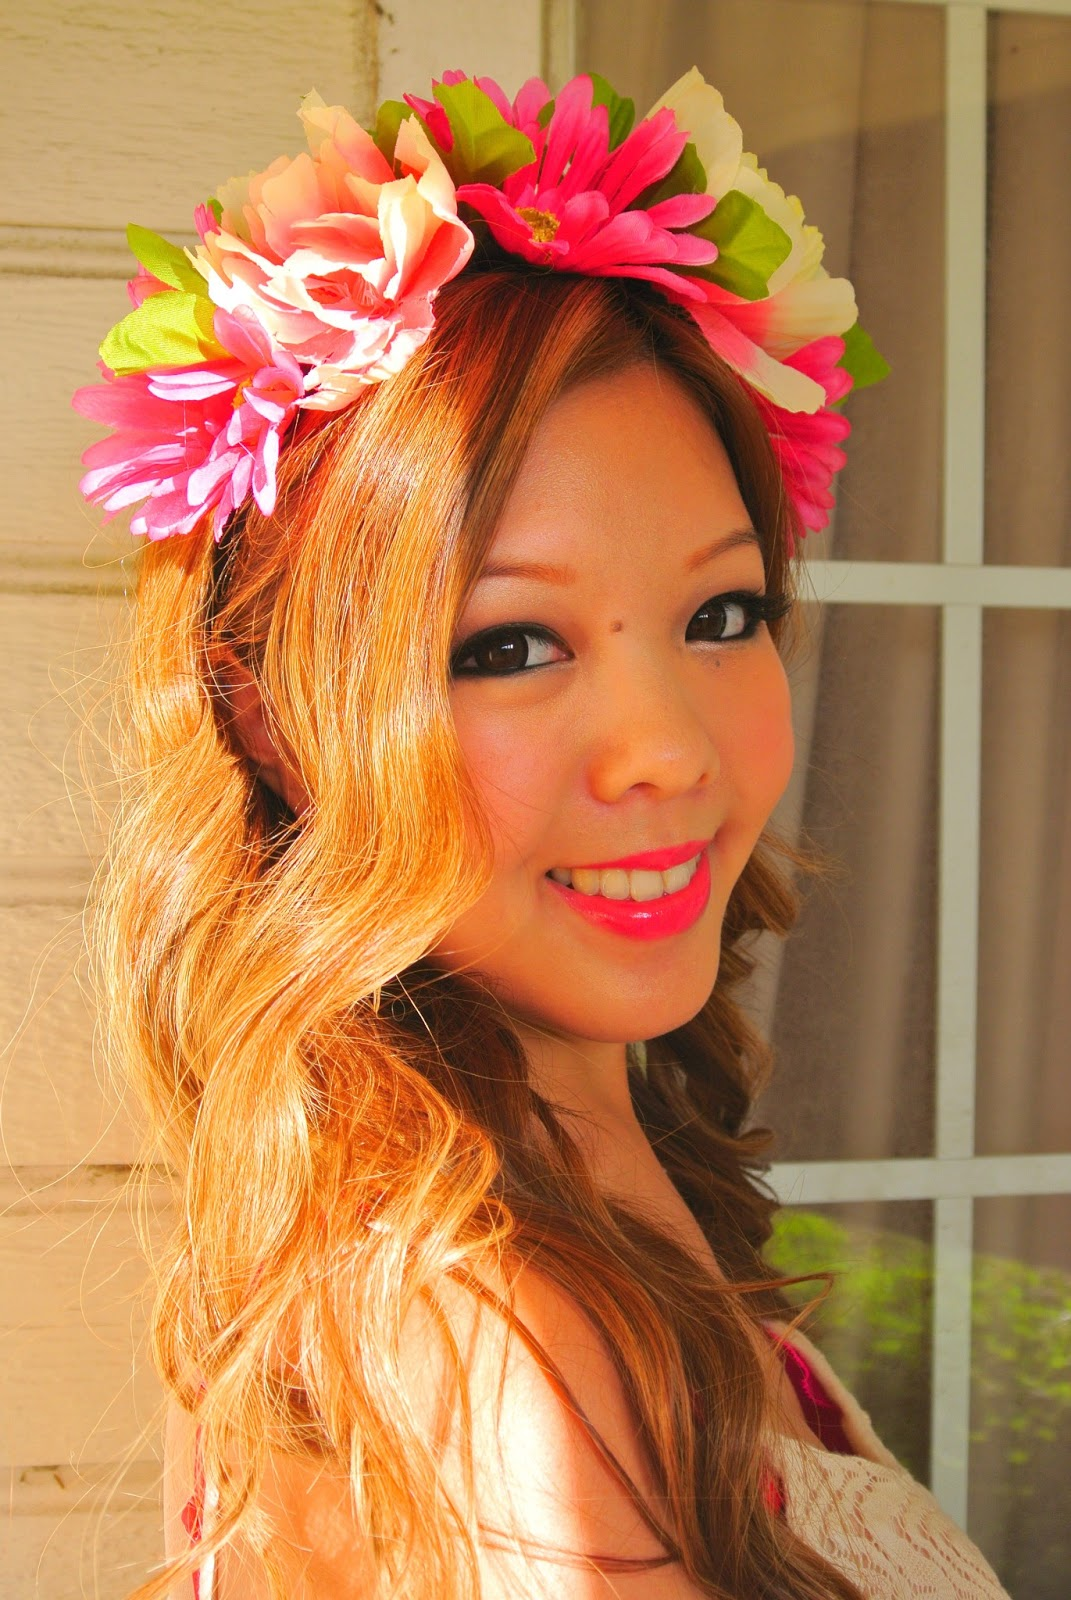 Find great deals on eBay for flower headband. Shop with confidence.